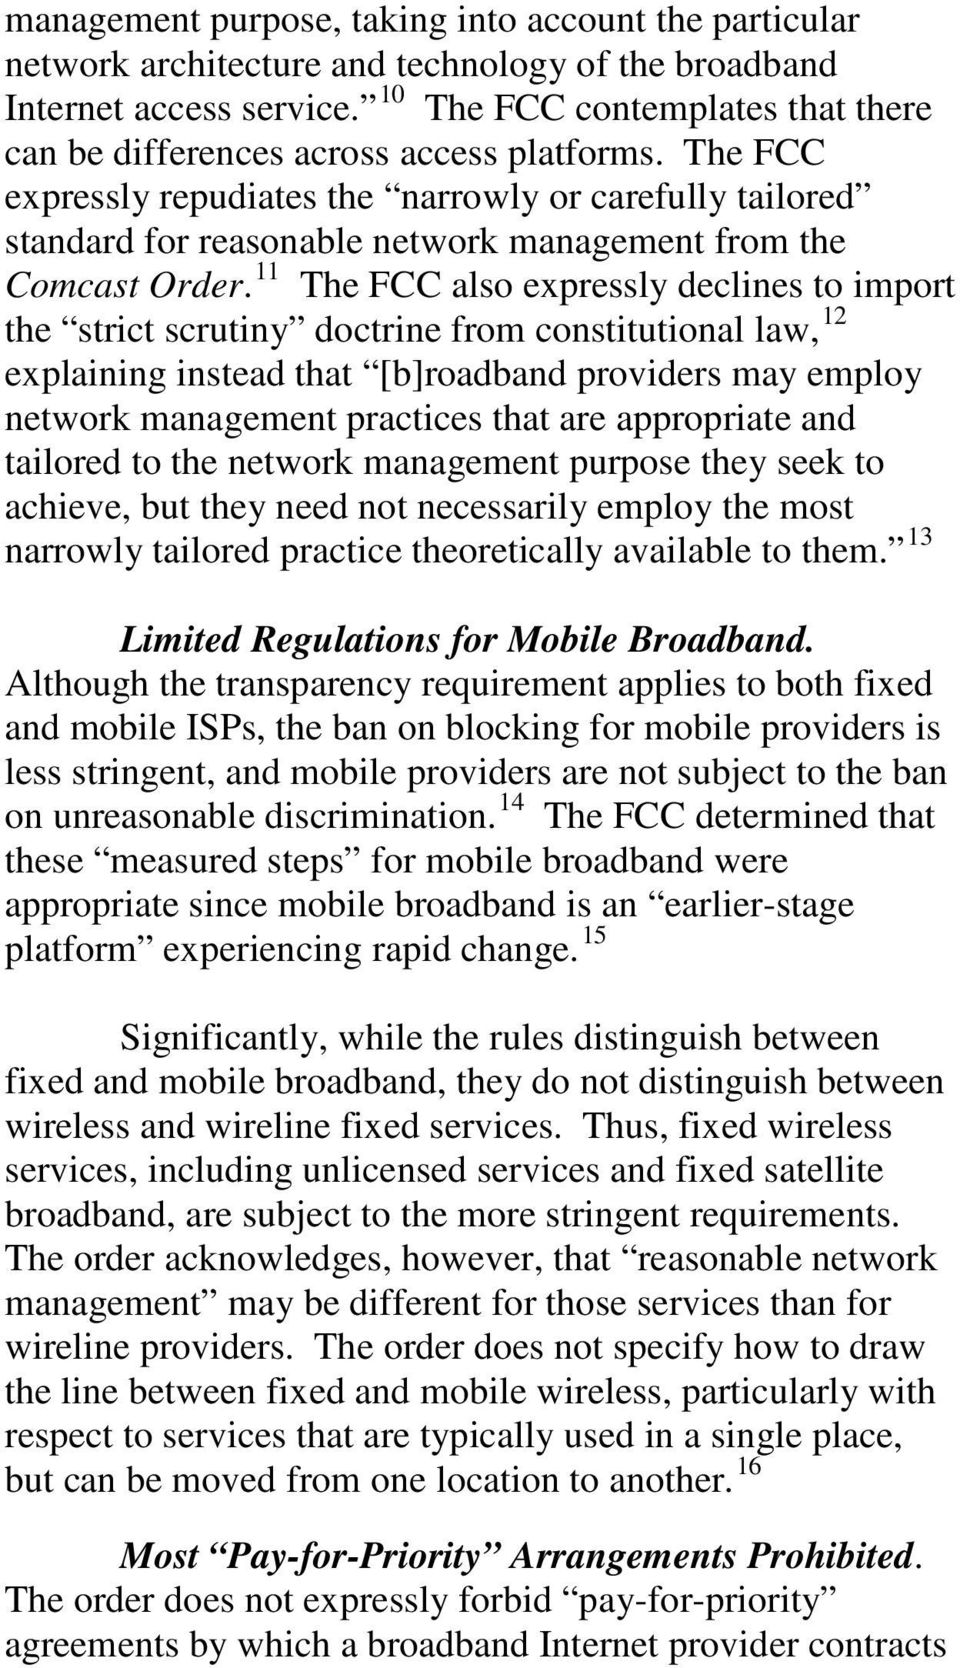 The FCC expressly repudiates the narrowly or carefully tailored standard for reasonable network management from the Comcast Order.